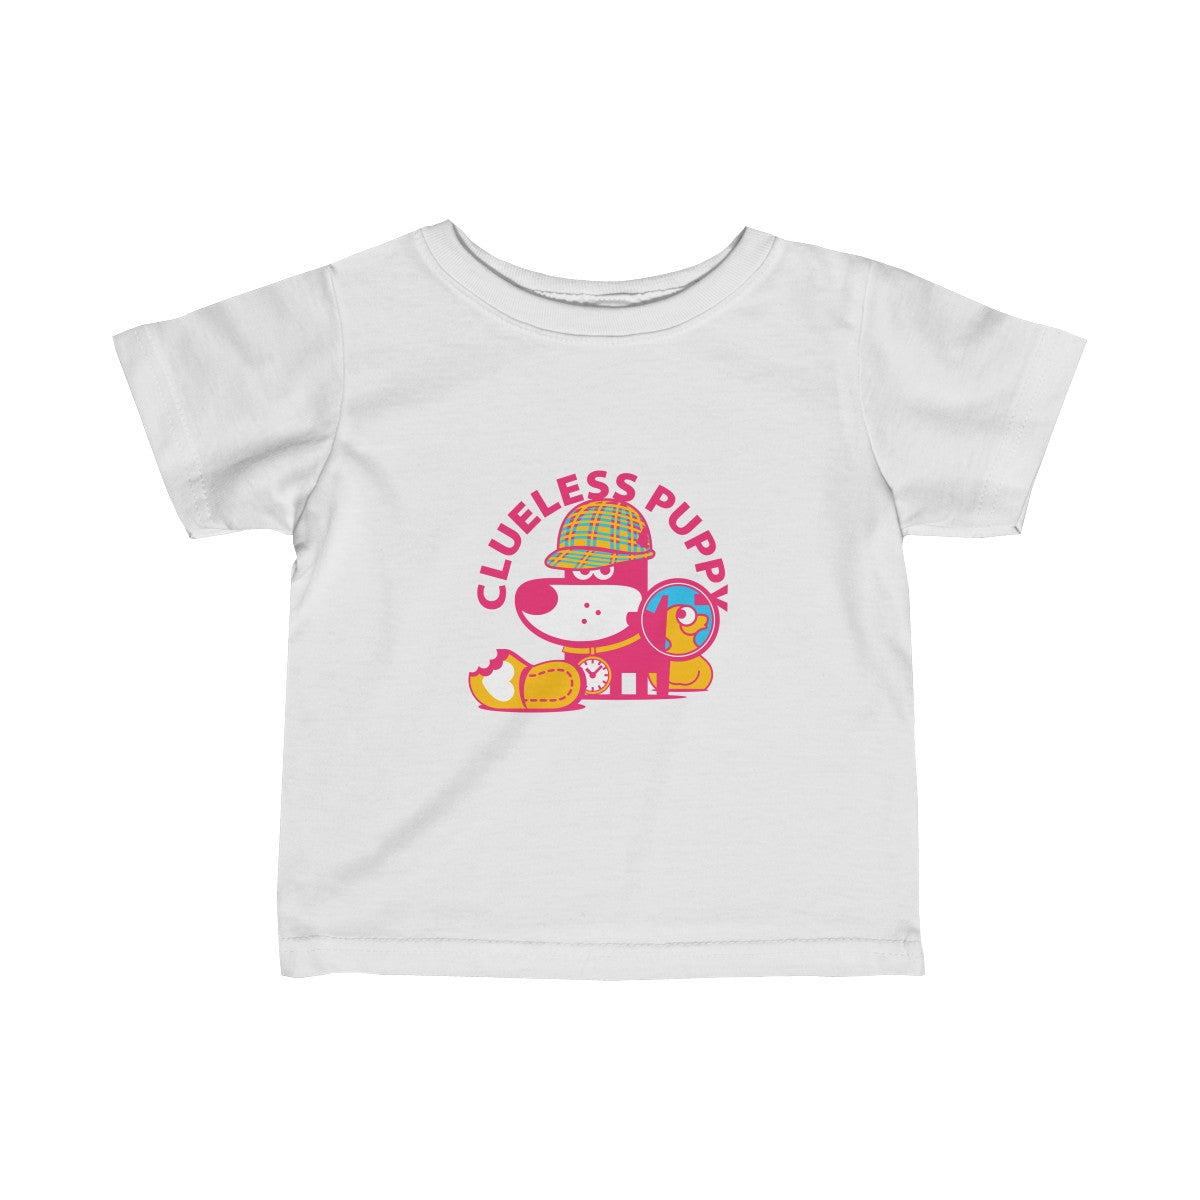 Clueless Puppy III . Infant Fine Jersey Tee